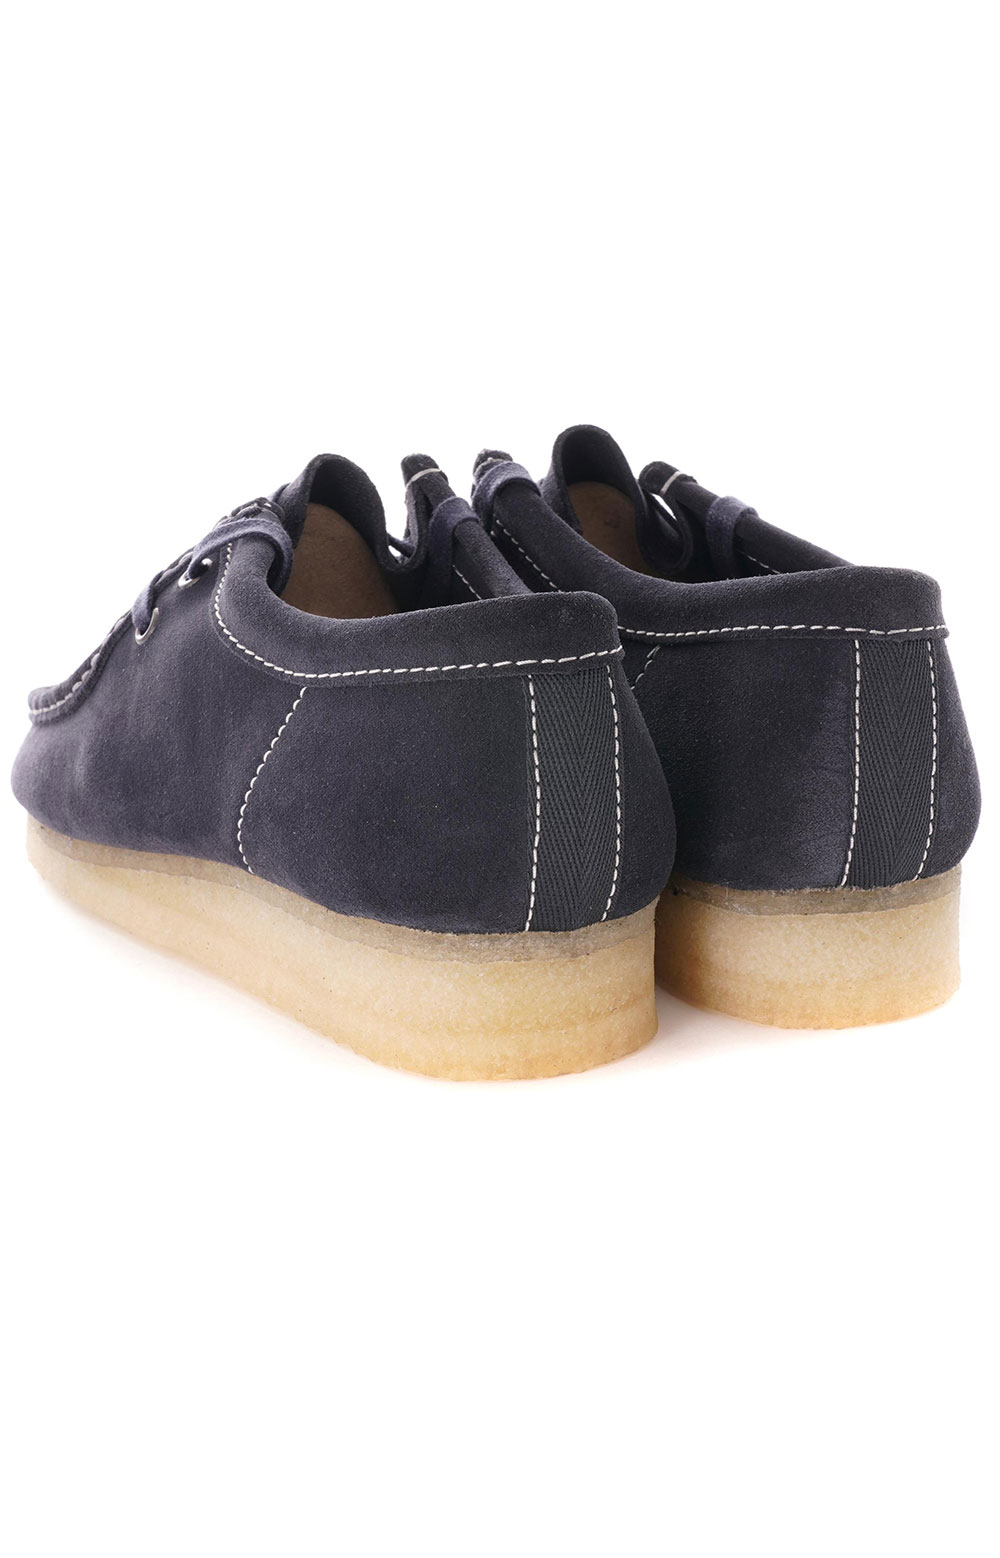 (26154744) Wallabee Shoes - Ink Suede 4